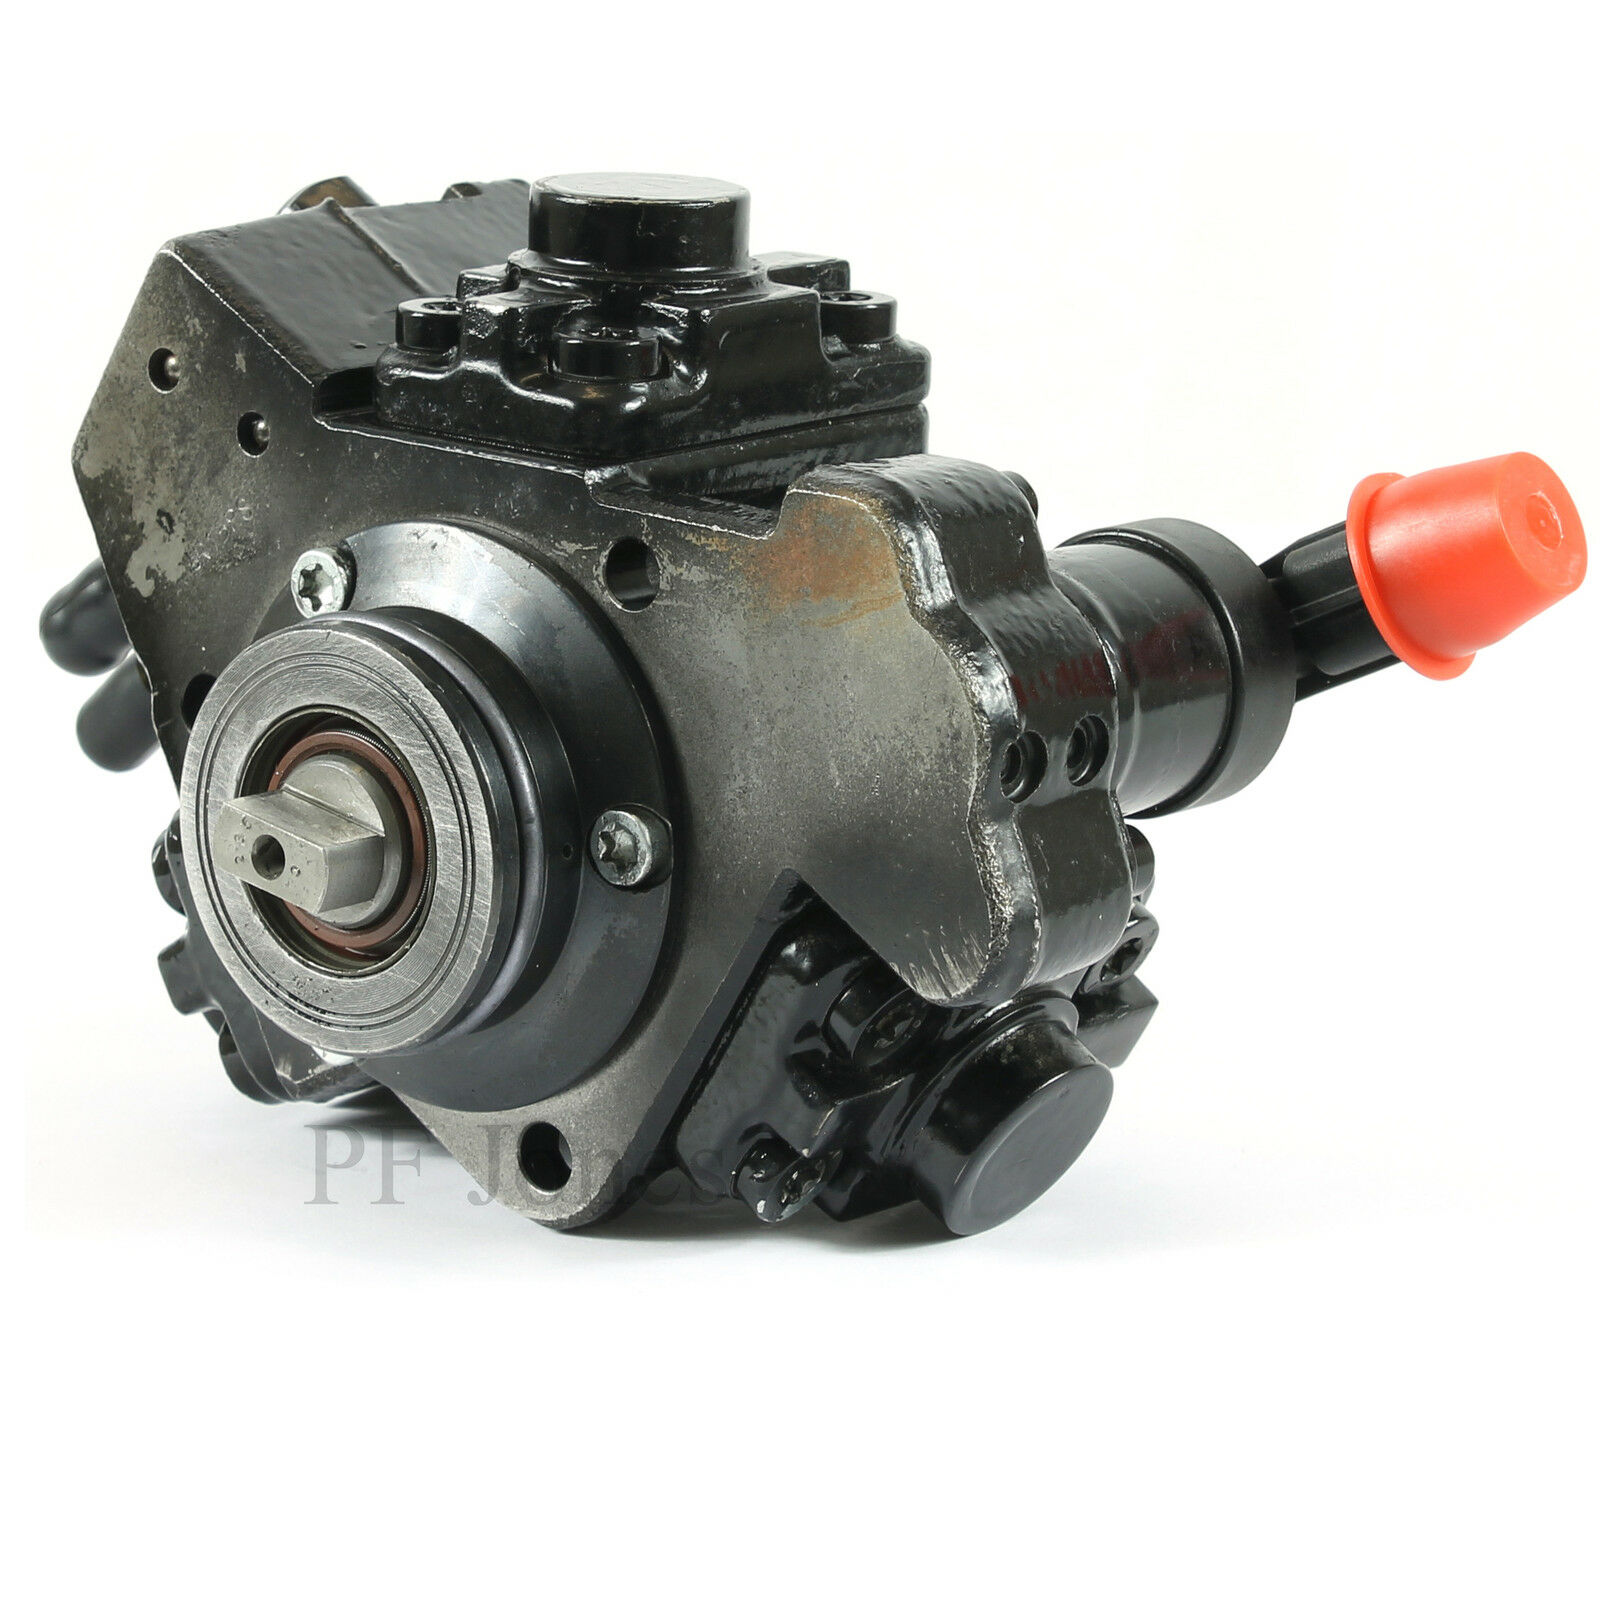 Reconditioned bosch diesel fuel pump 0445010266 60 cash back see listing